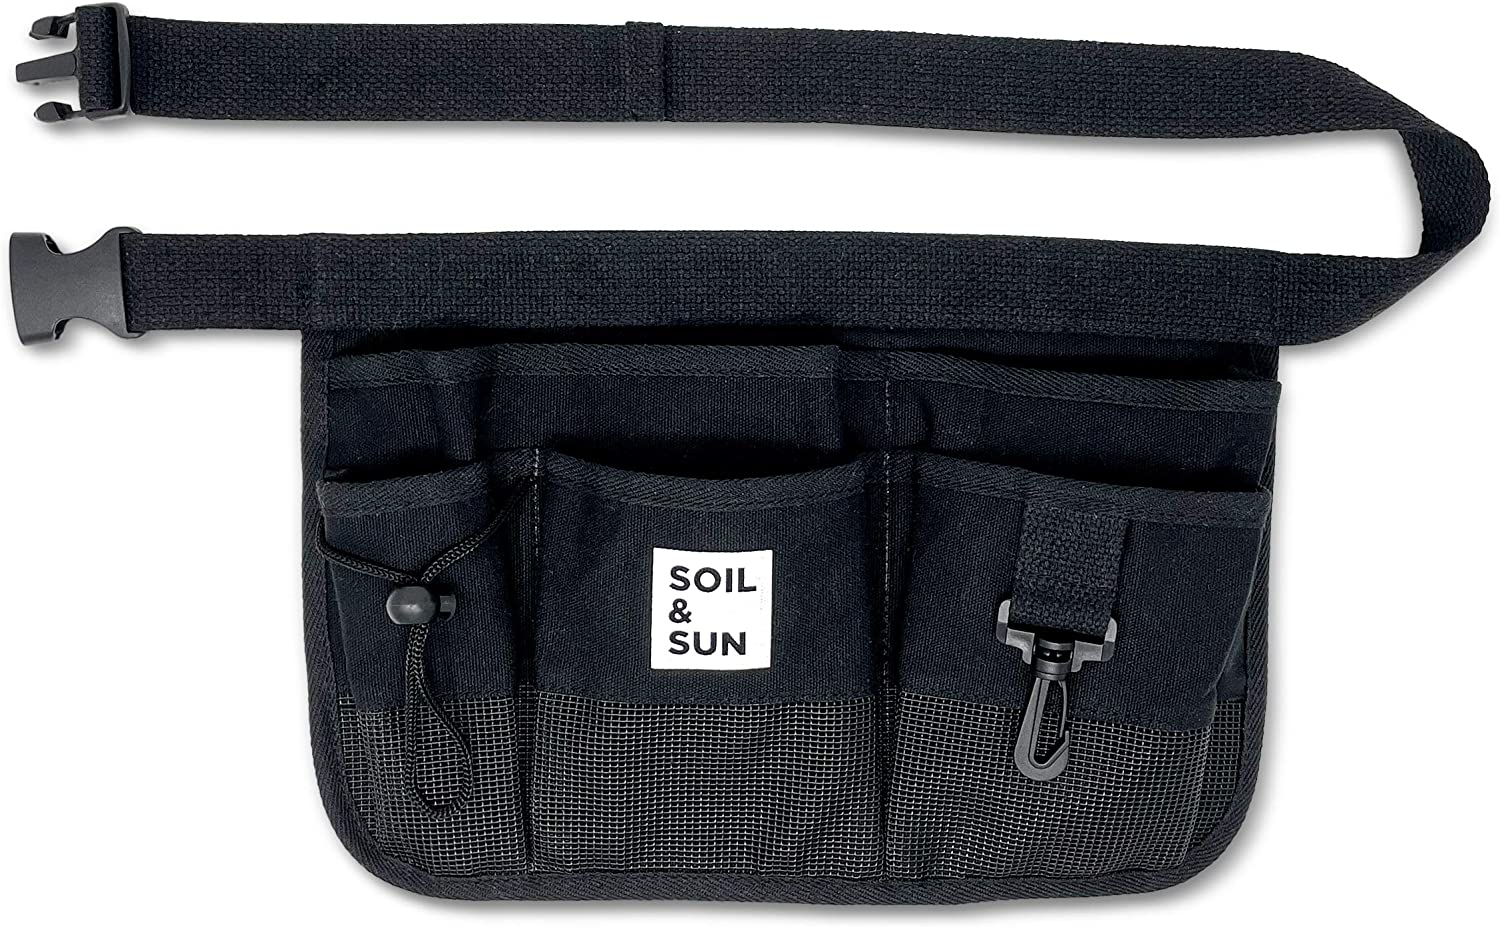 Soil and Sun Canvas Gardening Tool Belt – Comfortable and User-Friendly – Durable and Multifunctional Design (Black)